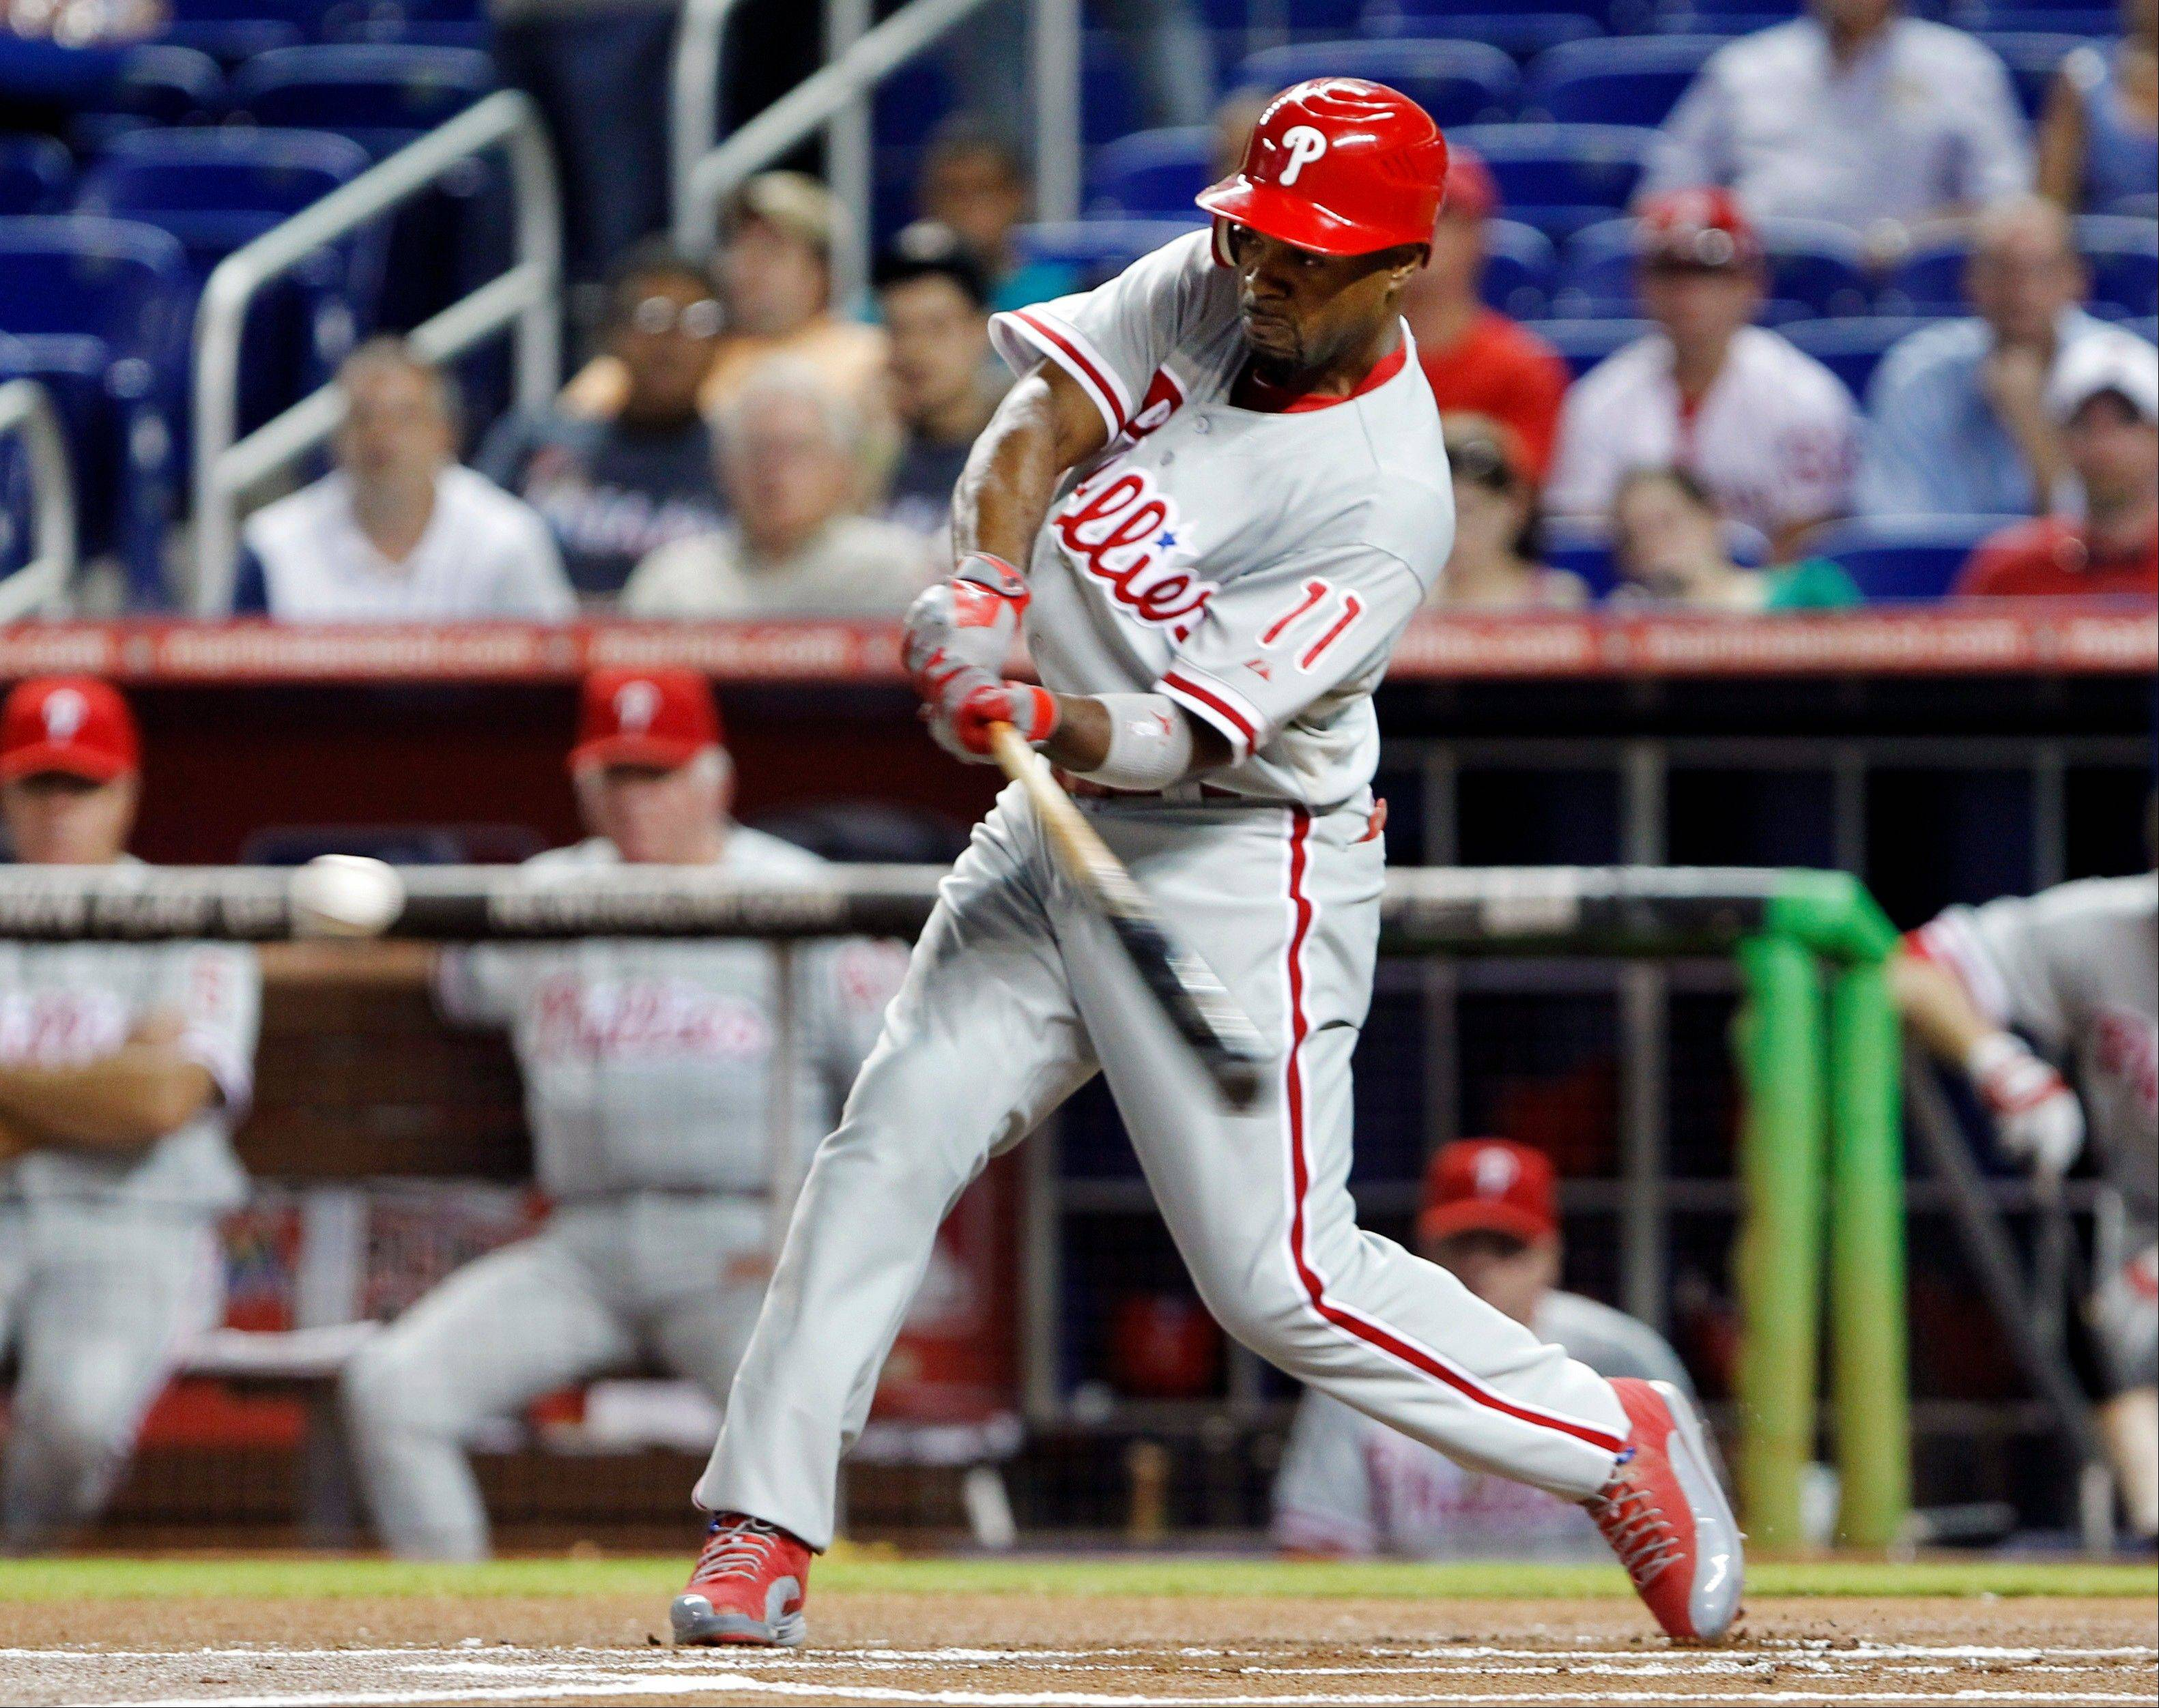 The Philadelphia Phillies' Jimmy Rollins hits a solo home run Tuesday during the first inning against the Miami Marlins.